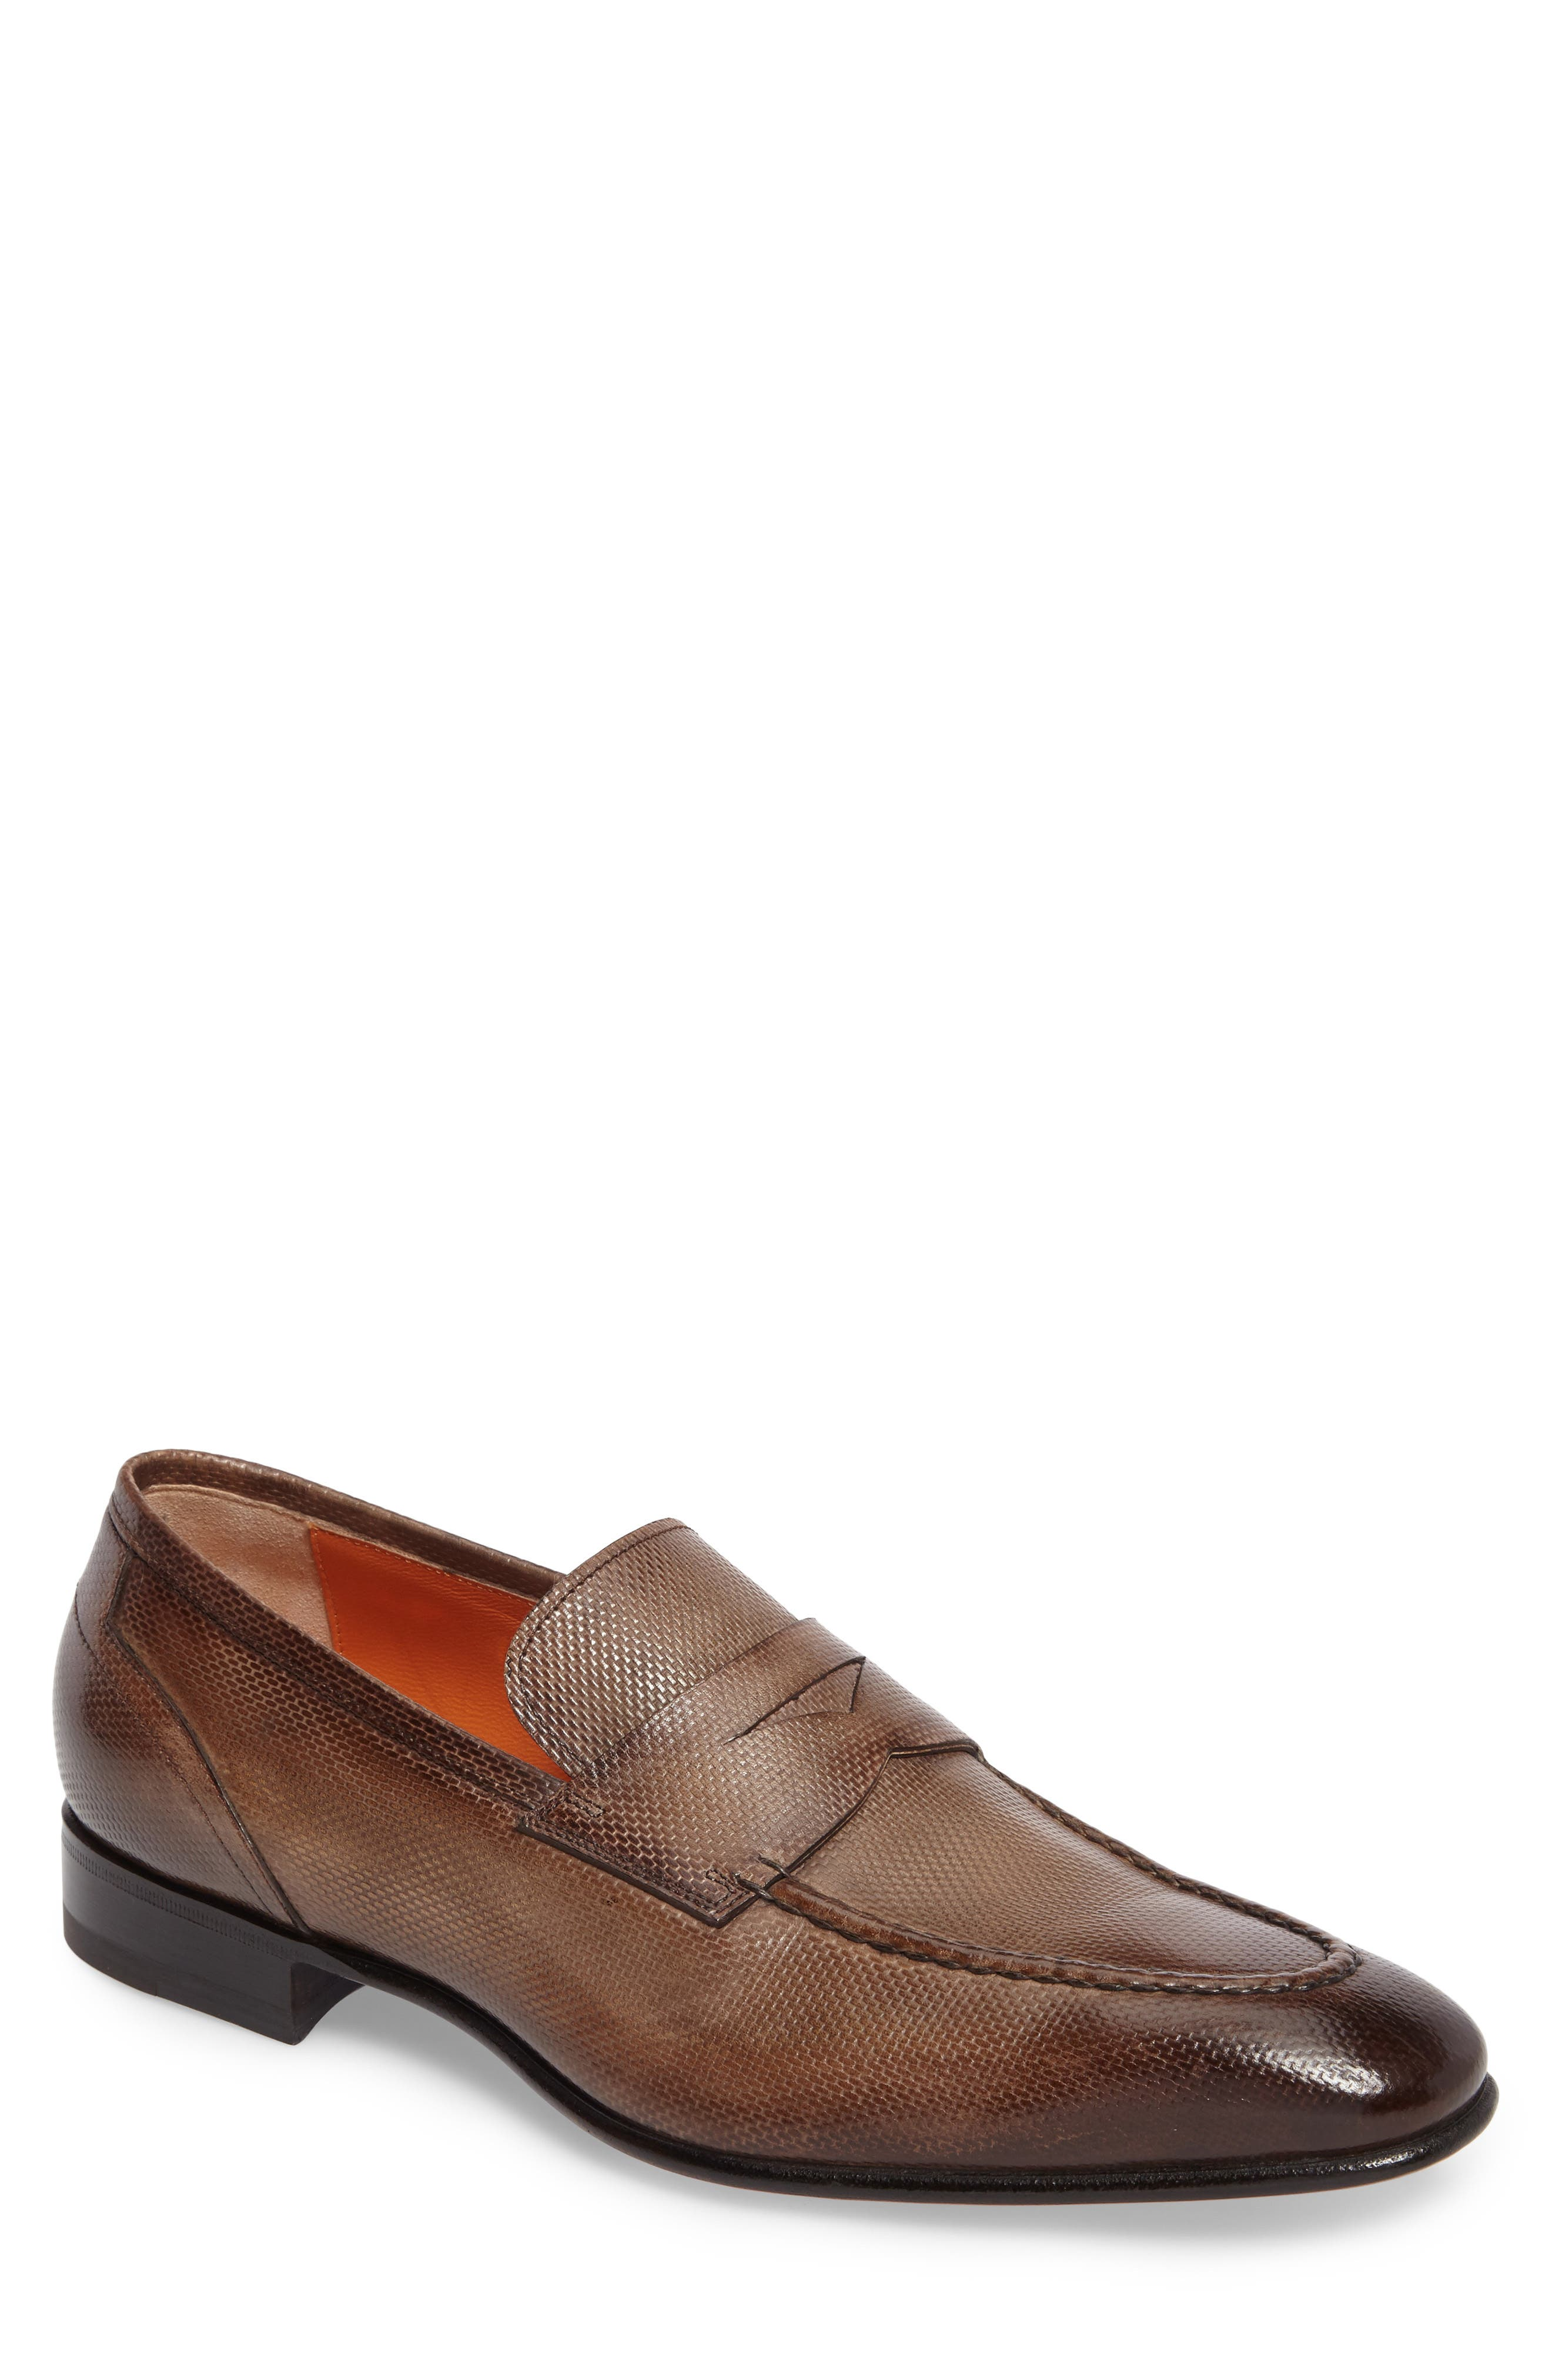 Felipe Penny Loafer,                             Main thumbnail 1, color,                             Brown